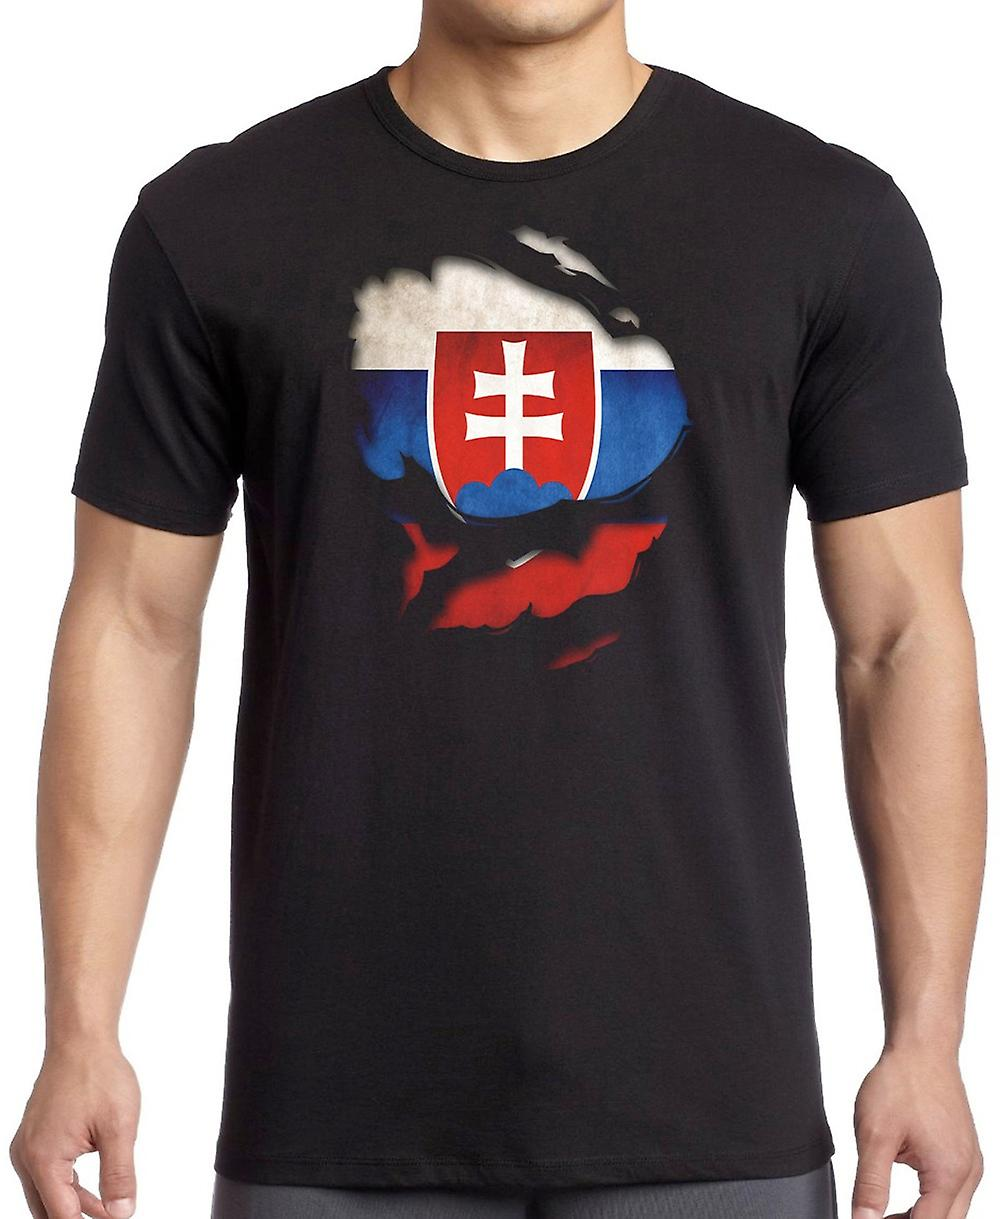 Slovakia Ripped Effect Under Shirt Kids T Shirt